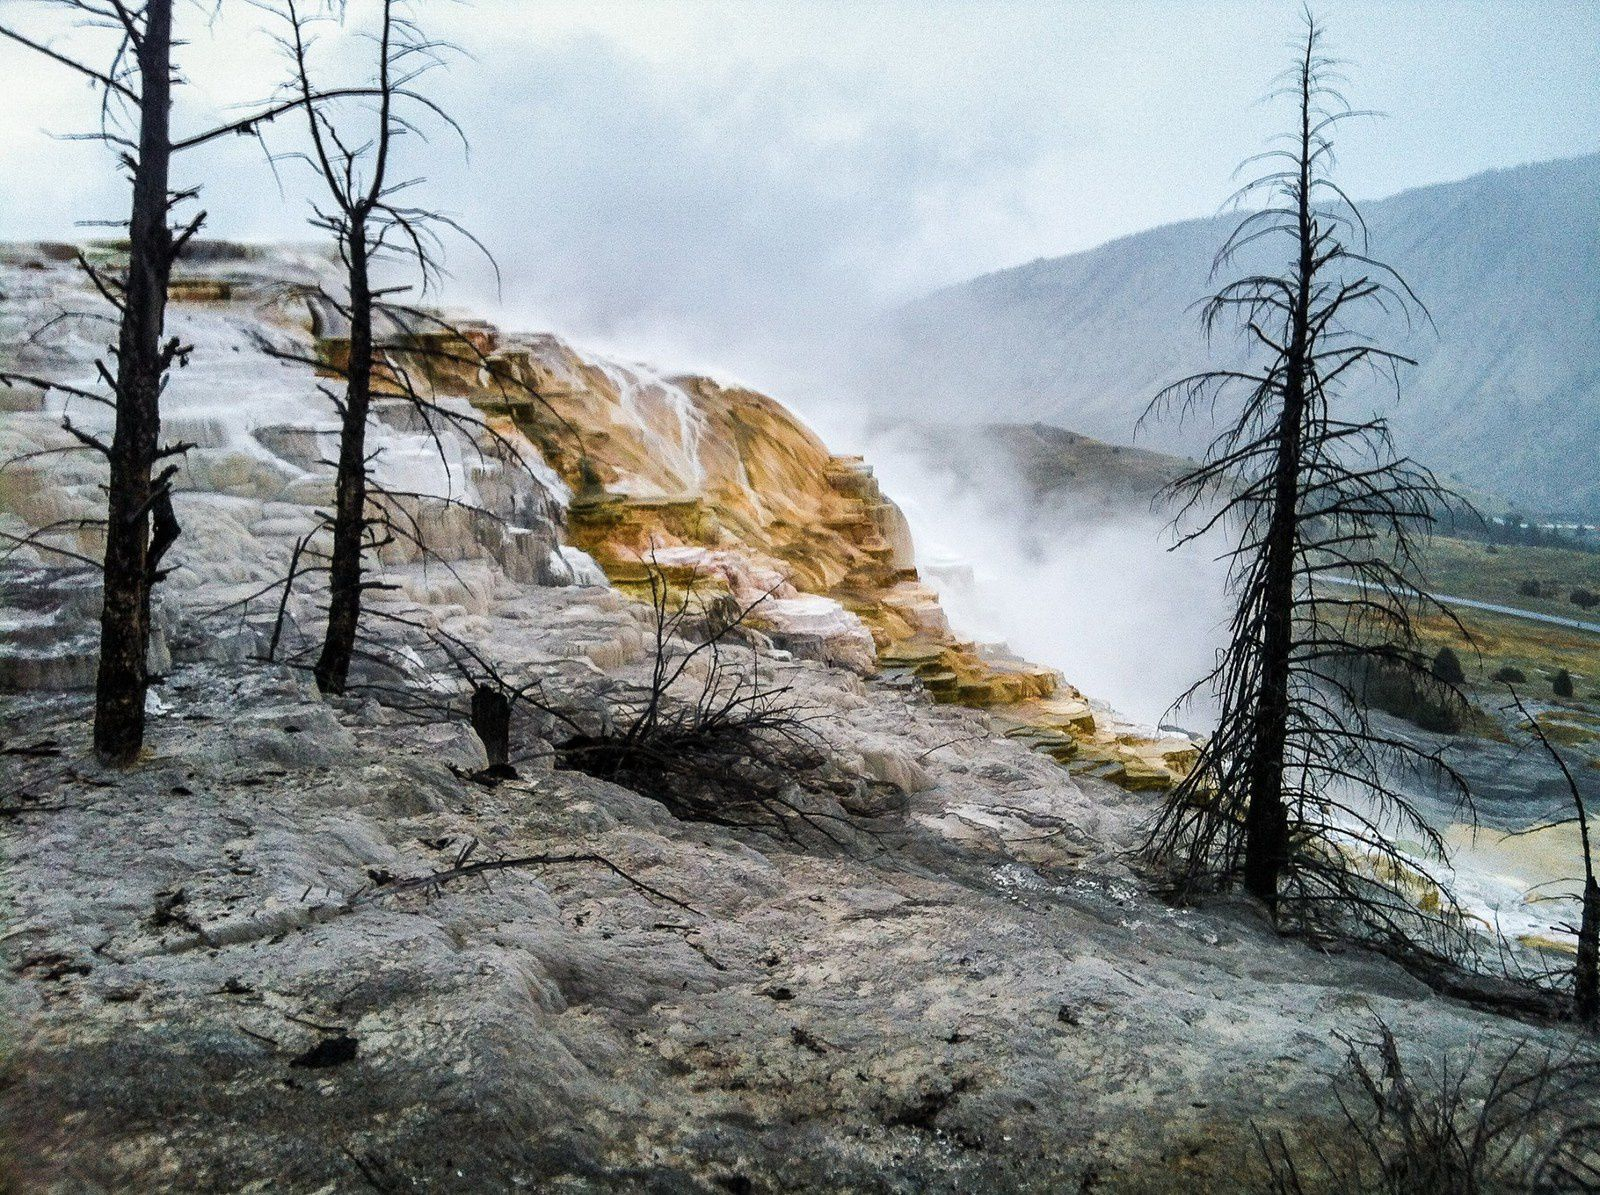 A Canary springs, les thermophiles restent colorés - photo Yellowstone National Park 2014